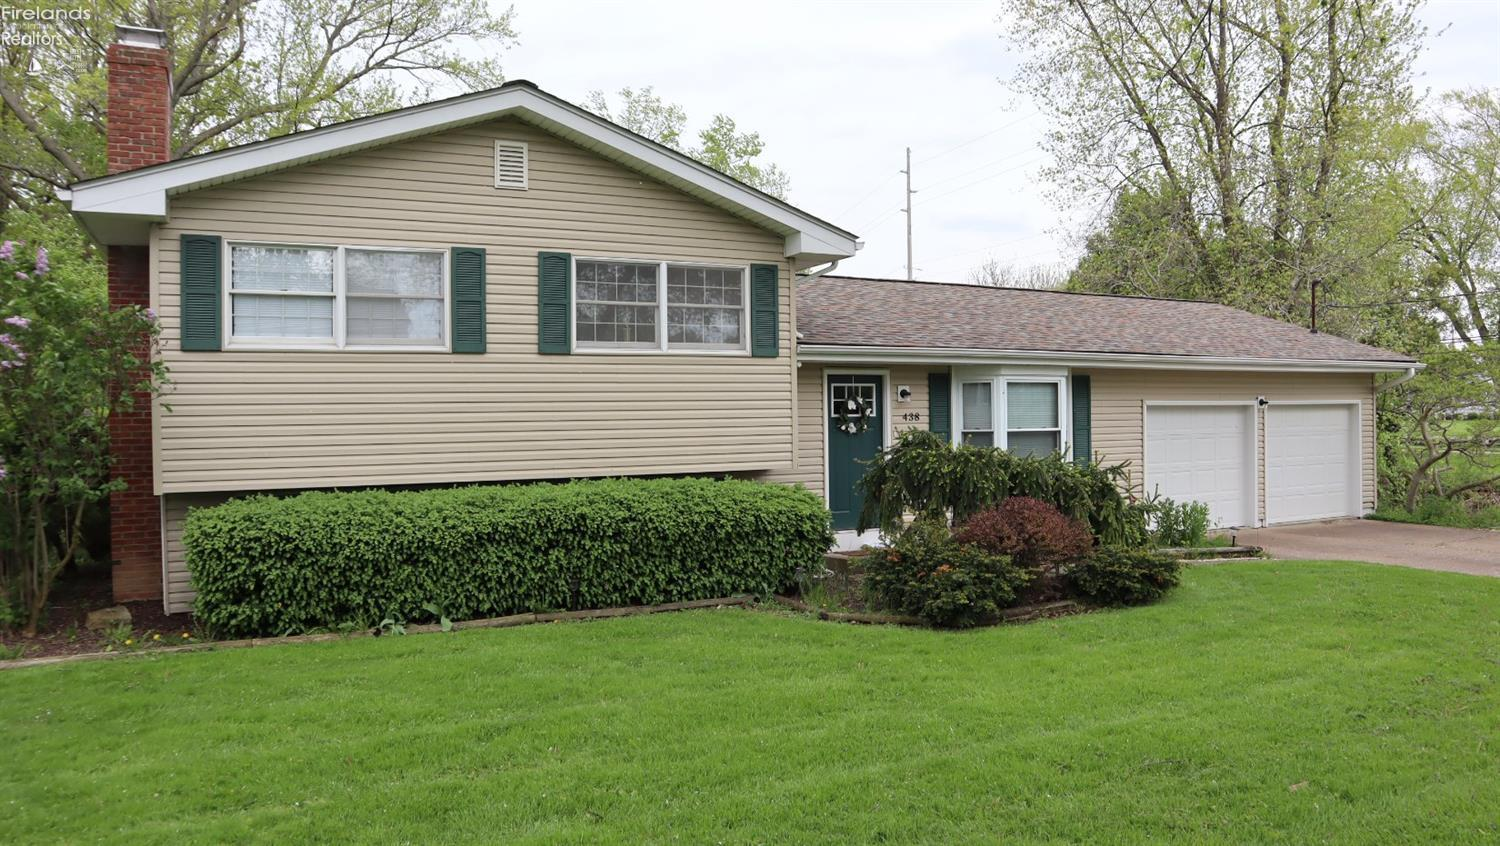 438 SHAWNEE PLACE, HURON, OH 44839